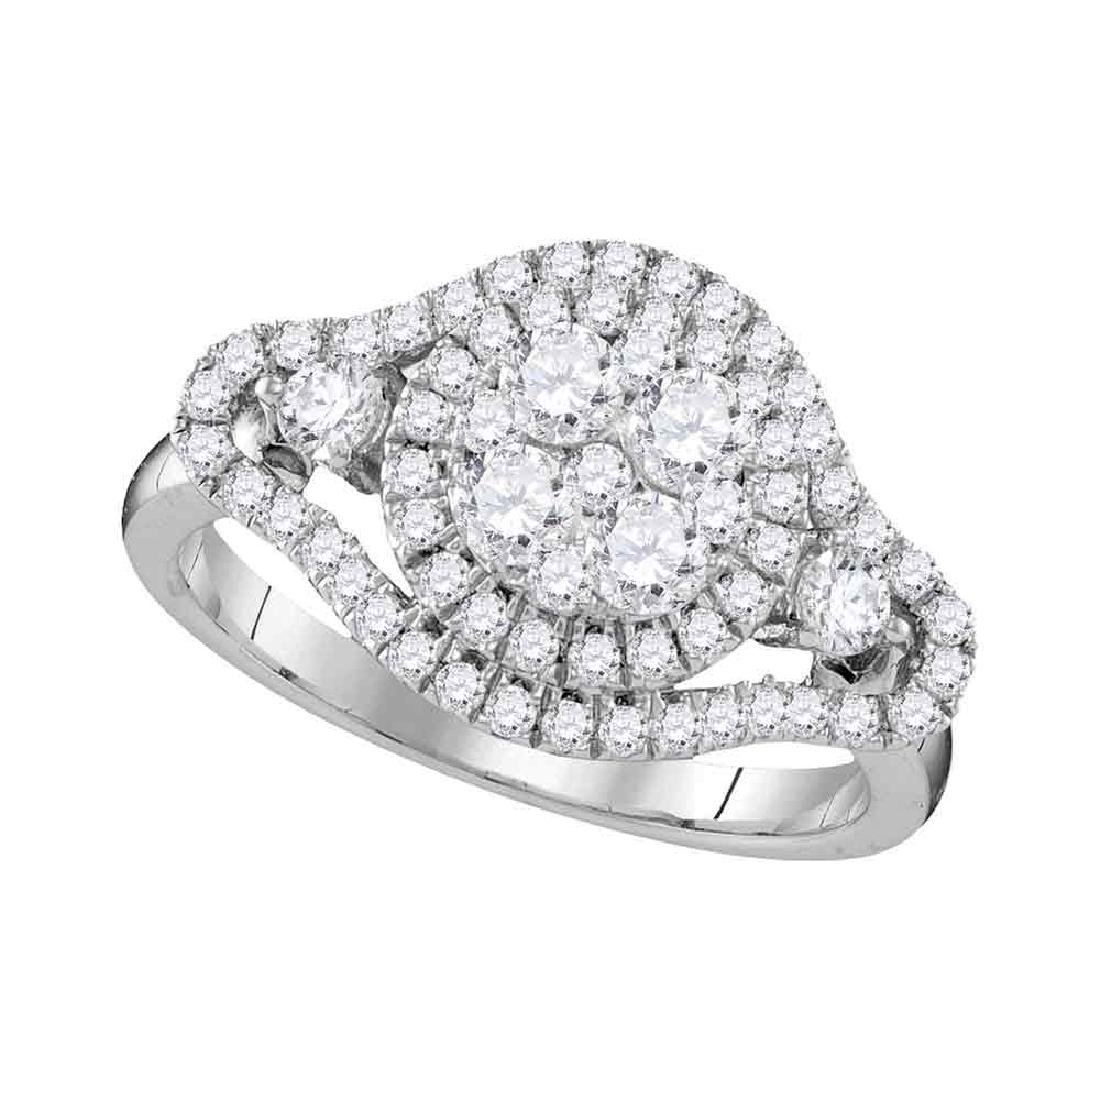 1.19 CTW Diamond Cluster Halo Bridal Engagement Ring